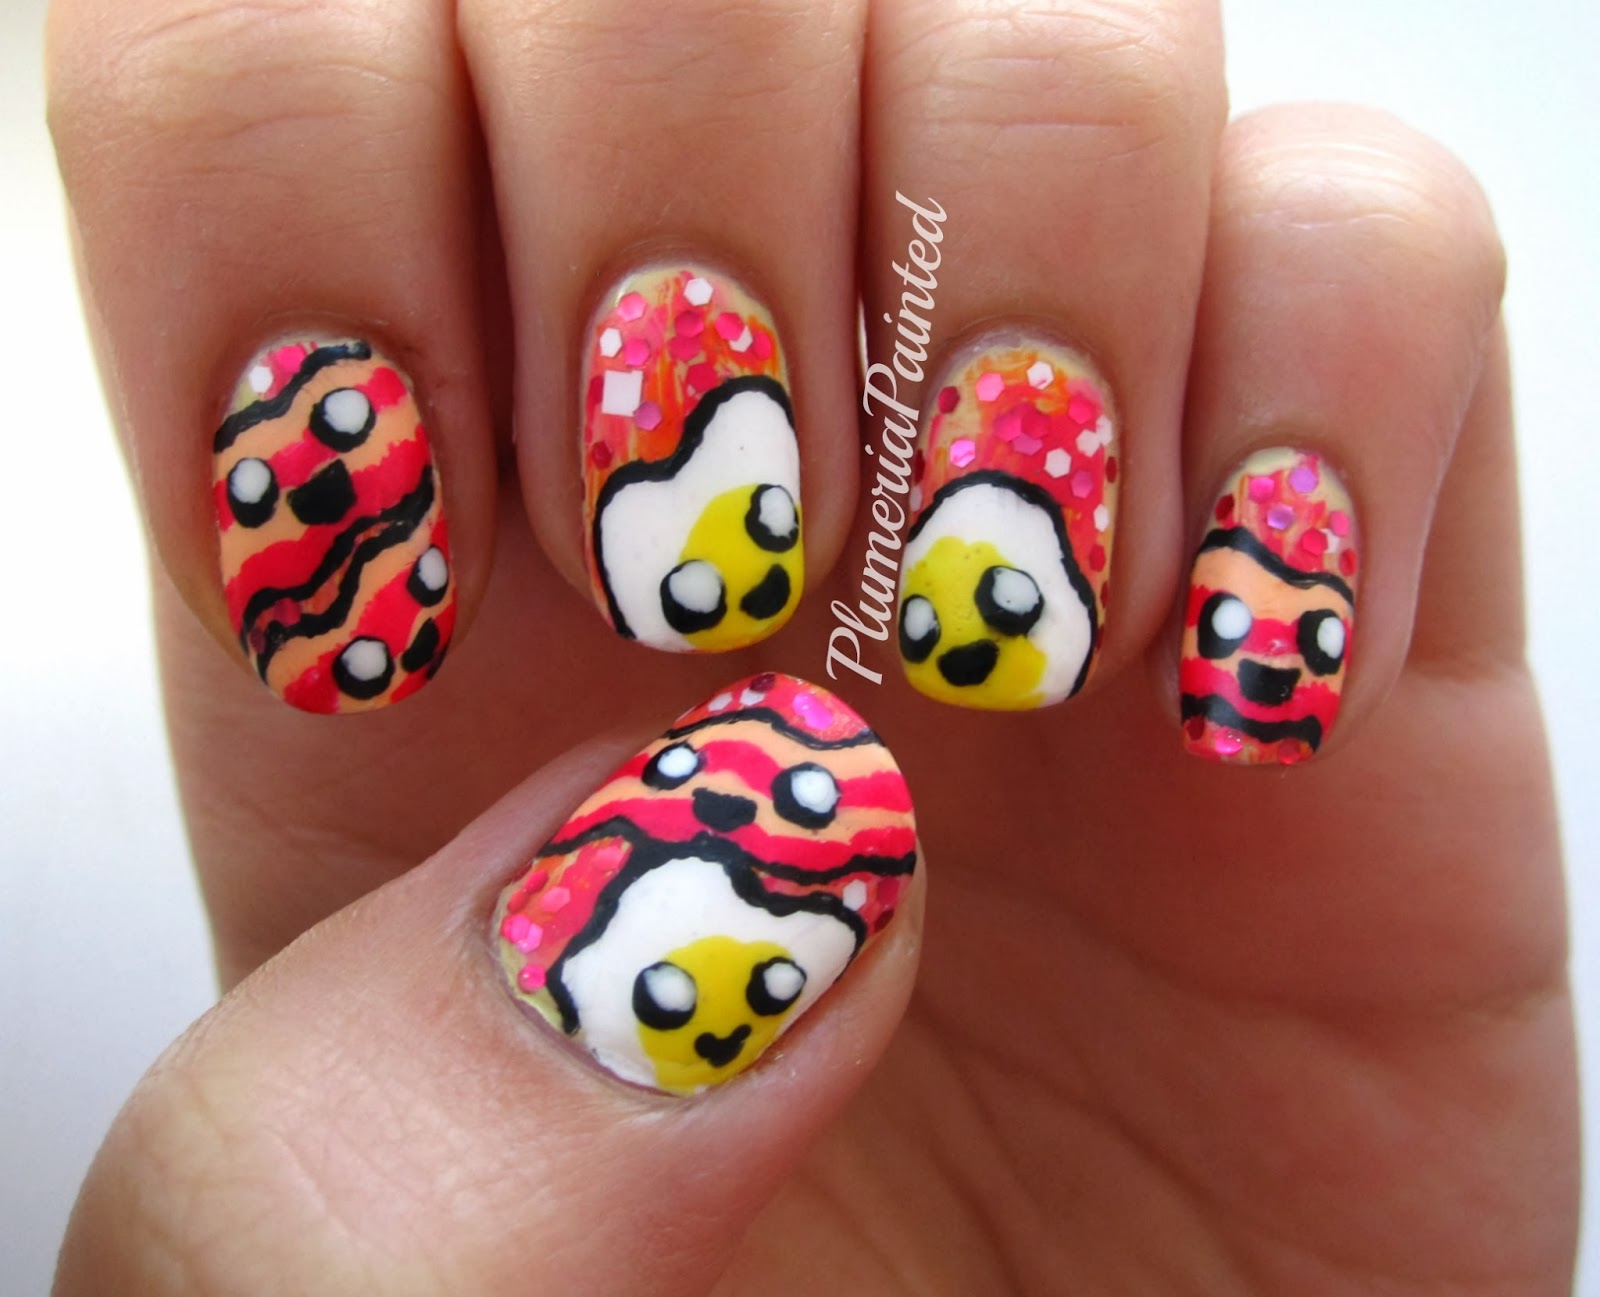 Plumeriapainted eggs bacon nail art regular food nail art should come back its the bayest and this egg and bacon design is pretty funky me gusta mucho my spanish is bad putting it out prinsesfo Gallery